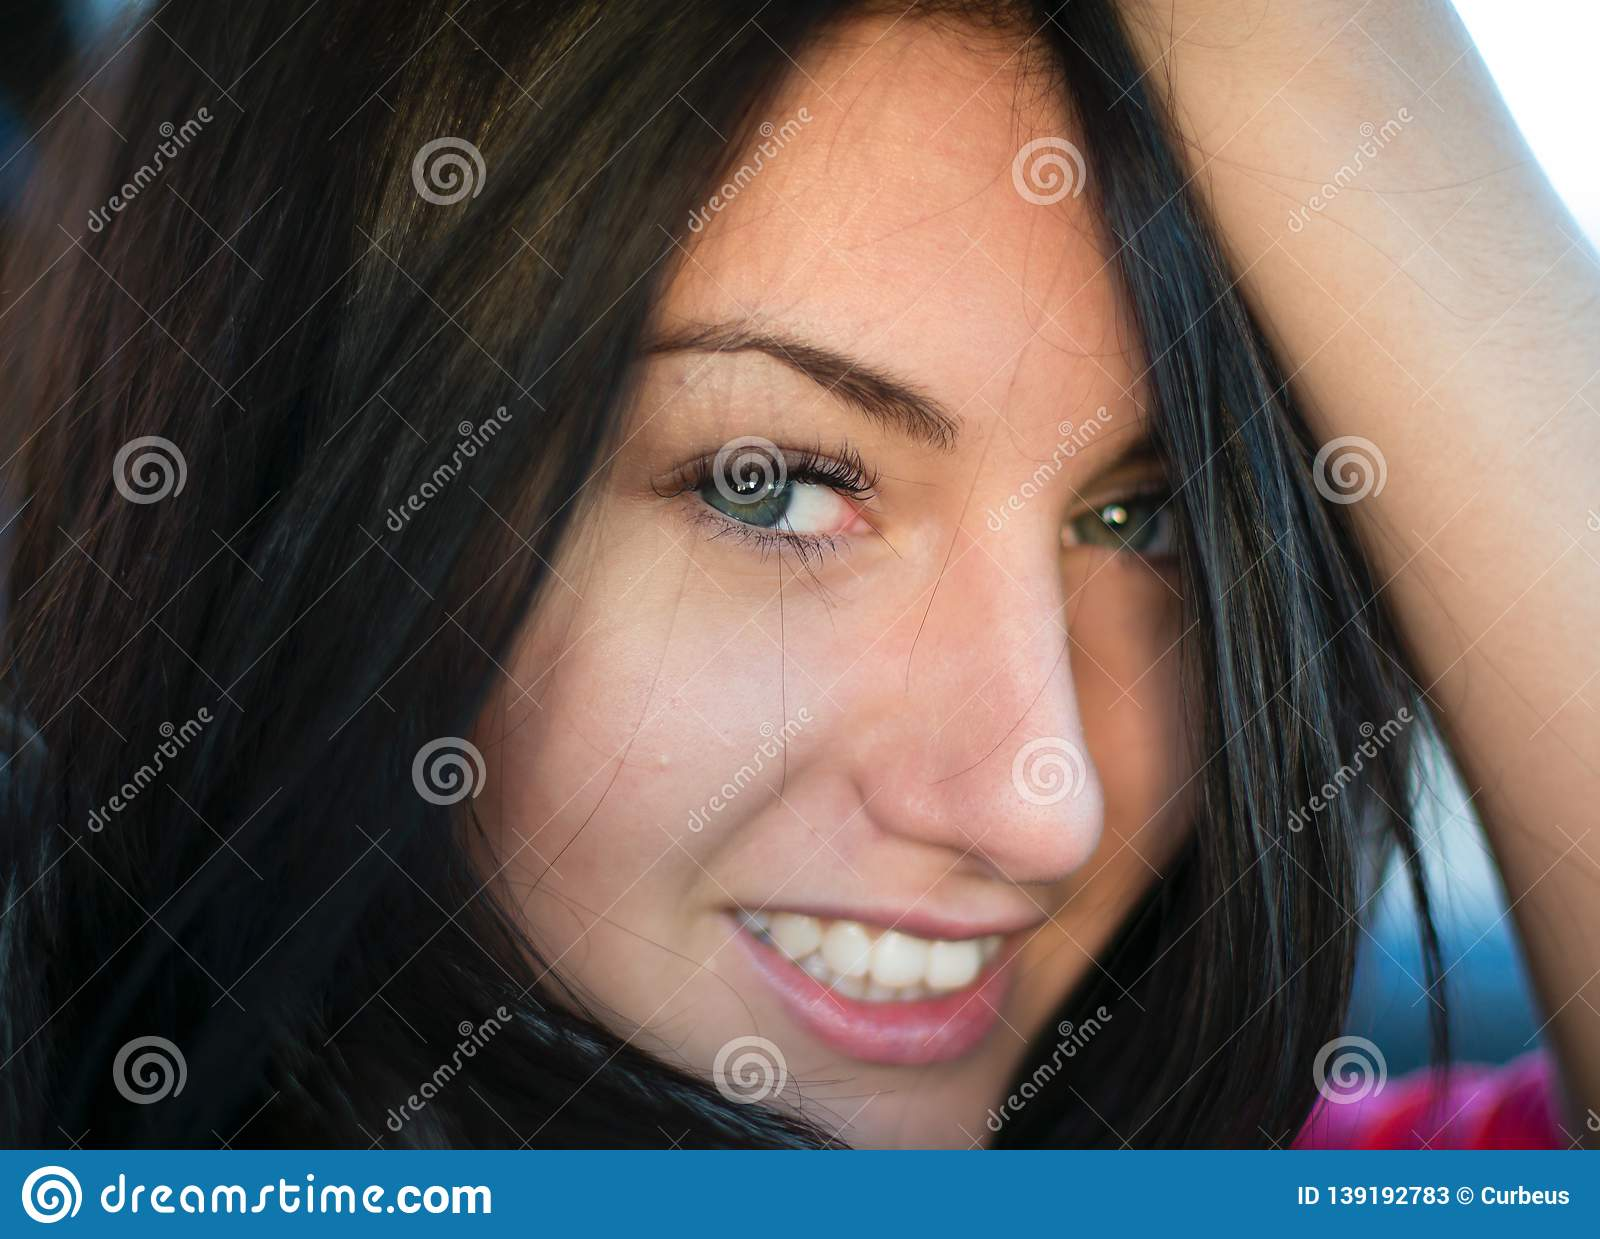 CloseUp portrait of Young Woman Smiling at Camera